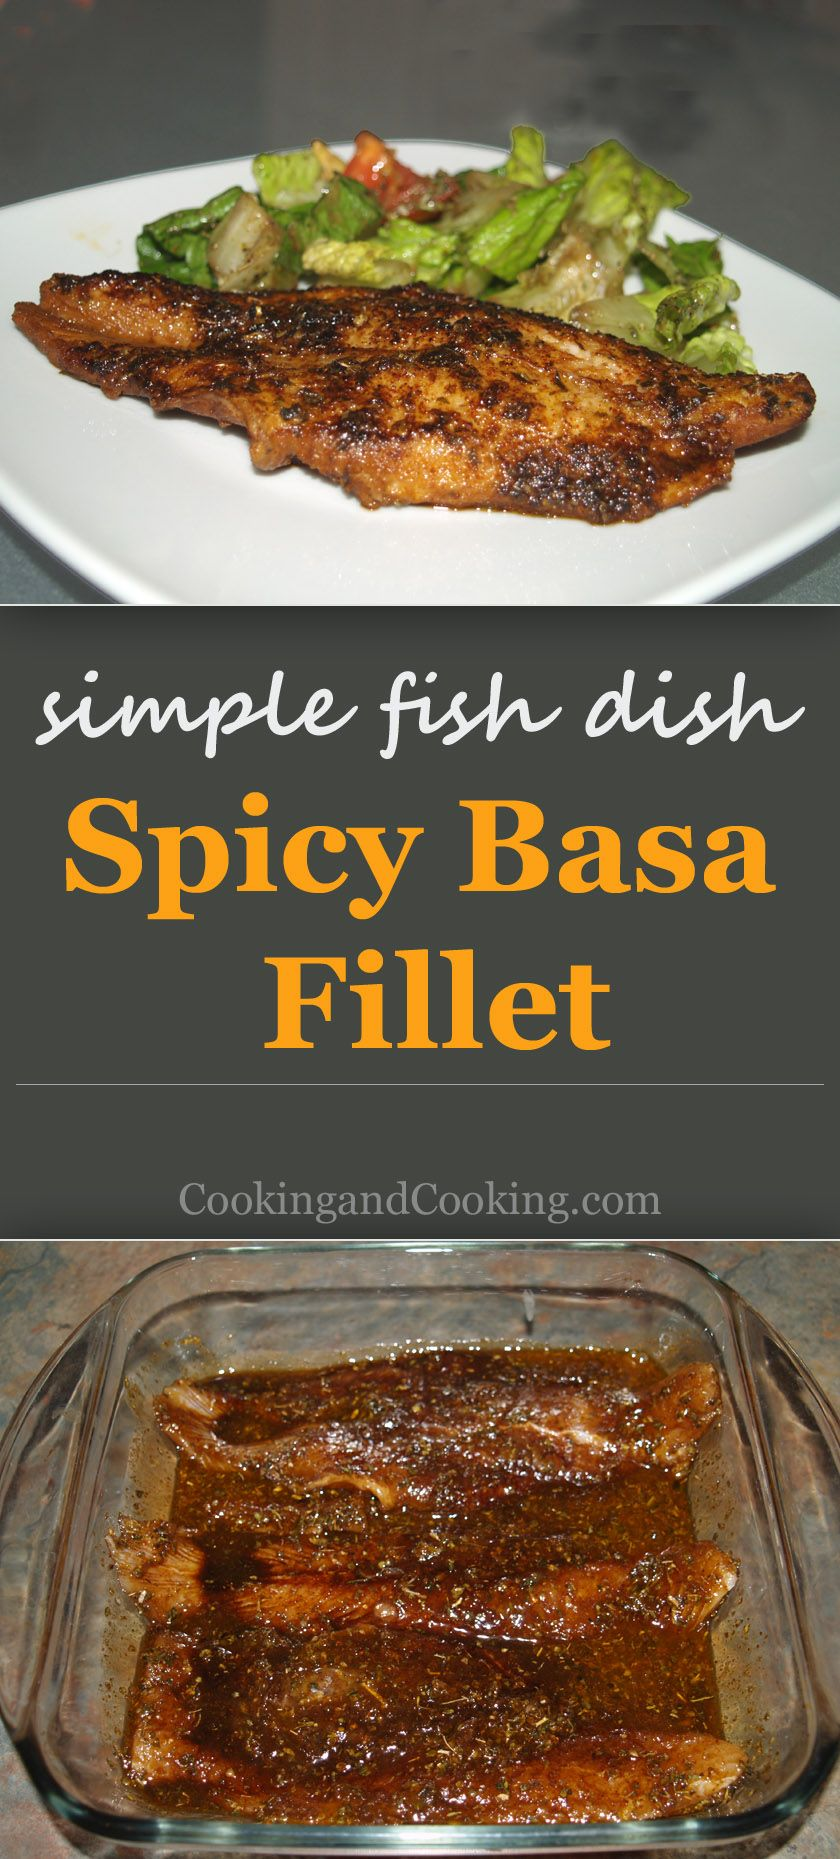 Spicy Basa Fillet Recipe